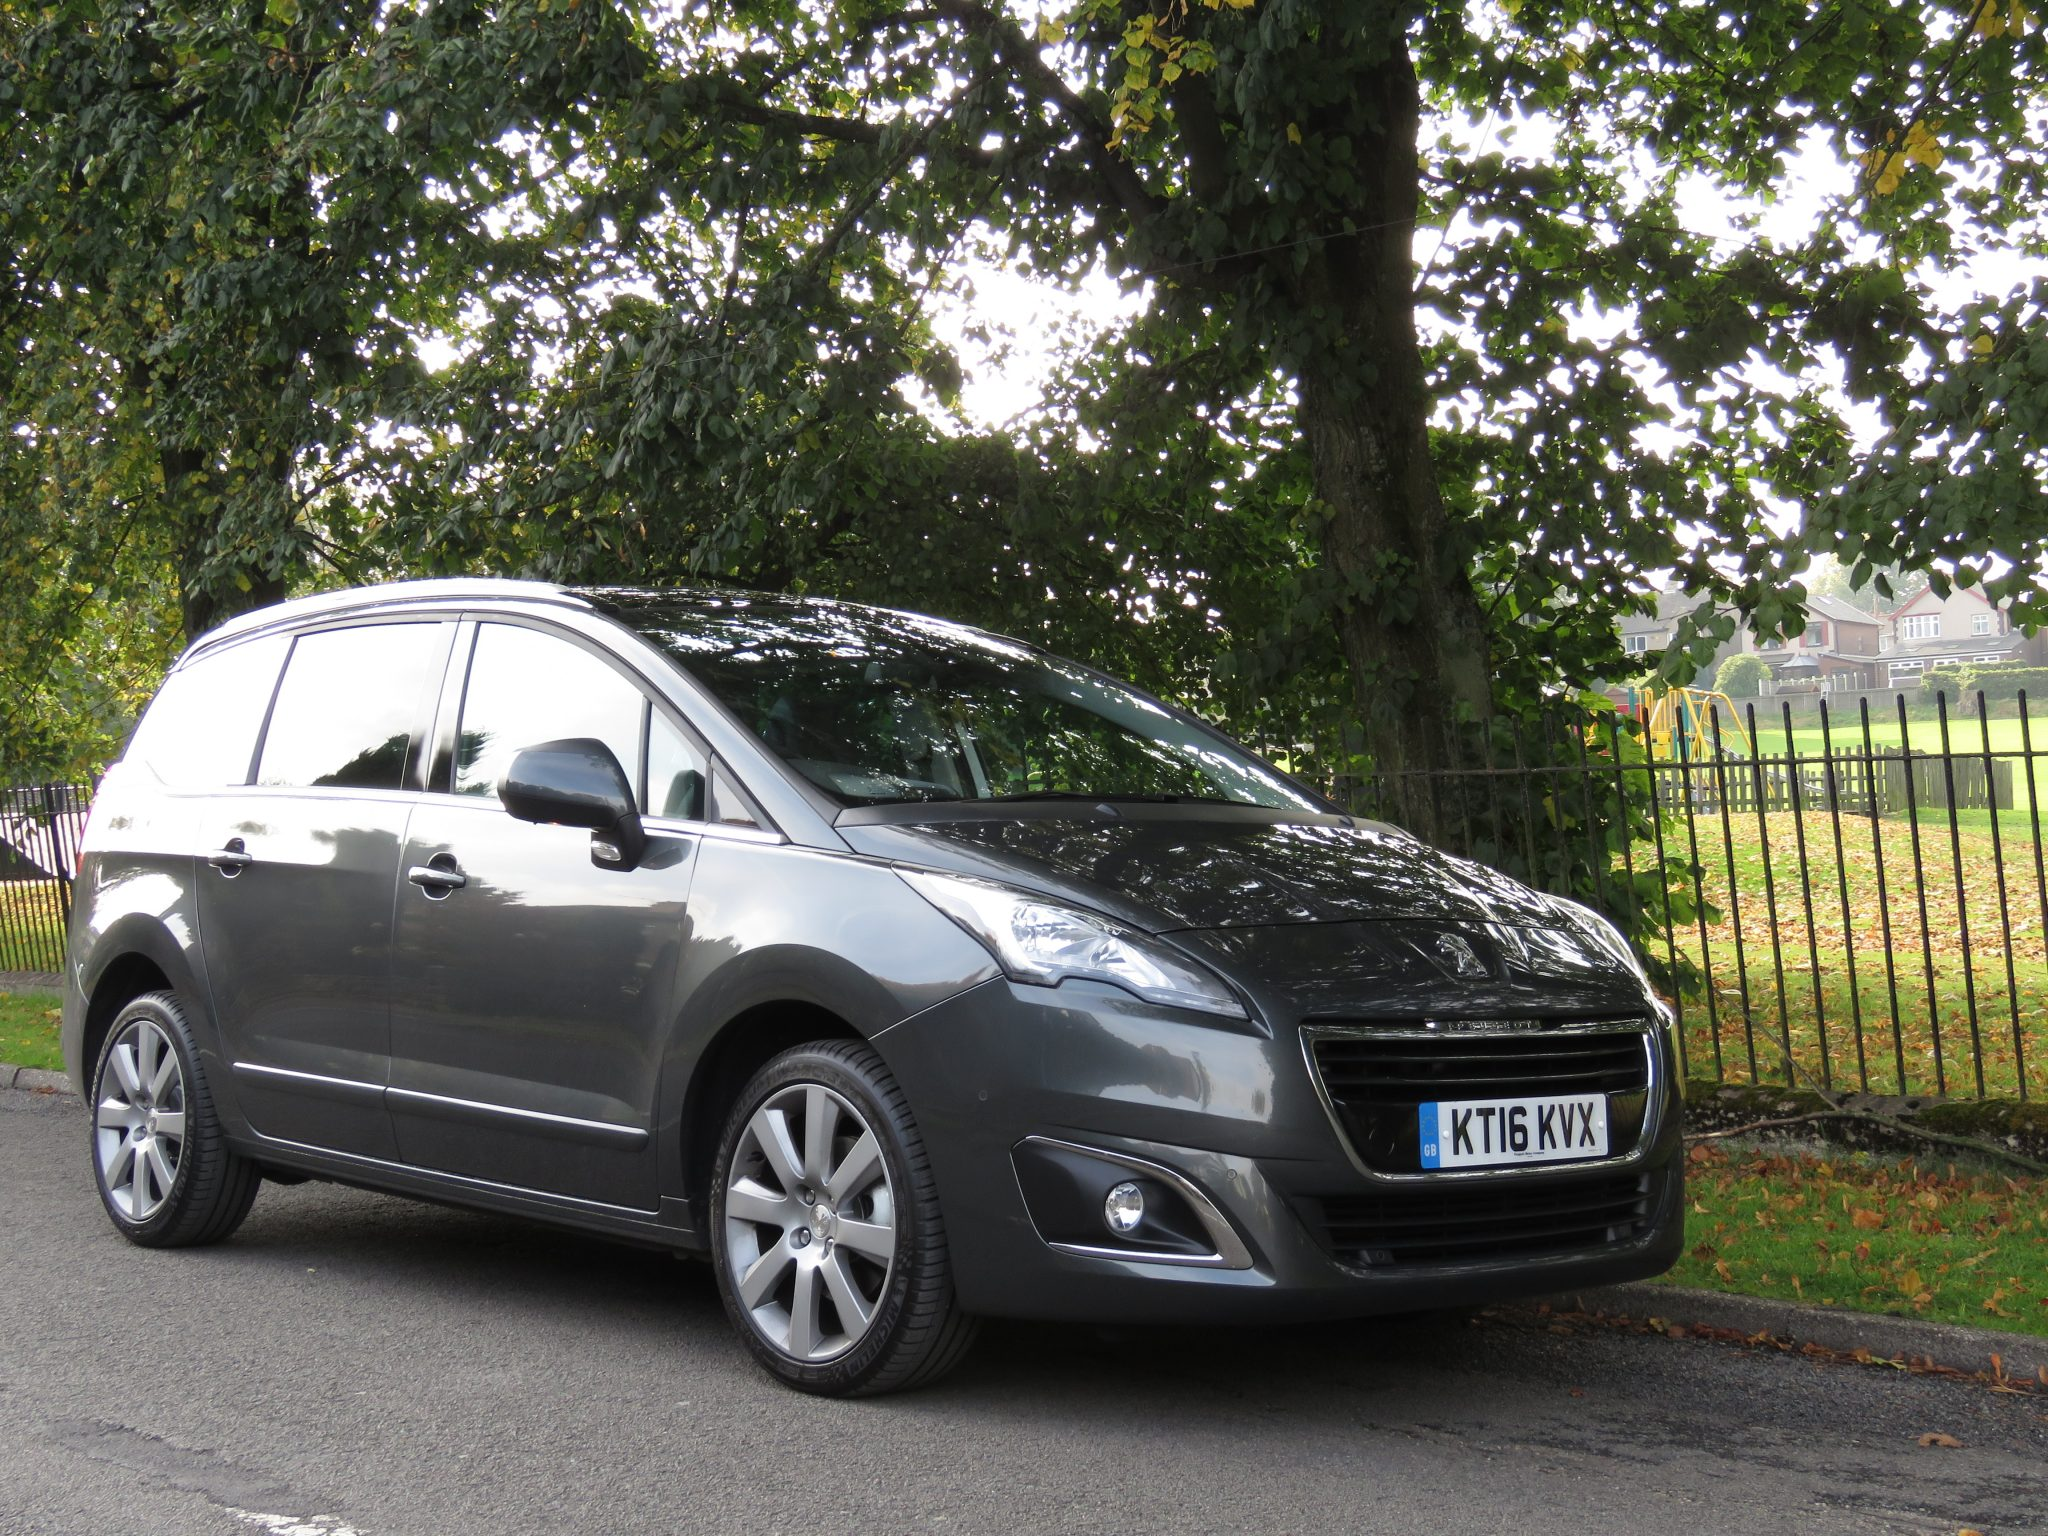 peugeot 5008 allure bluehdi 7 seater mpv review. Black Bedroom Furniture Sets. Home Design Ideas